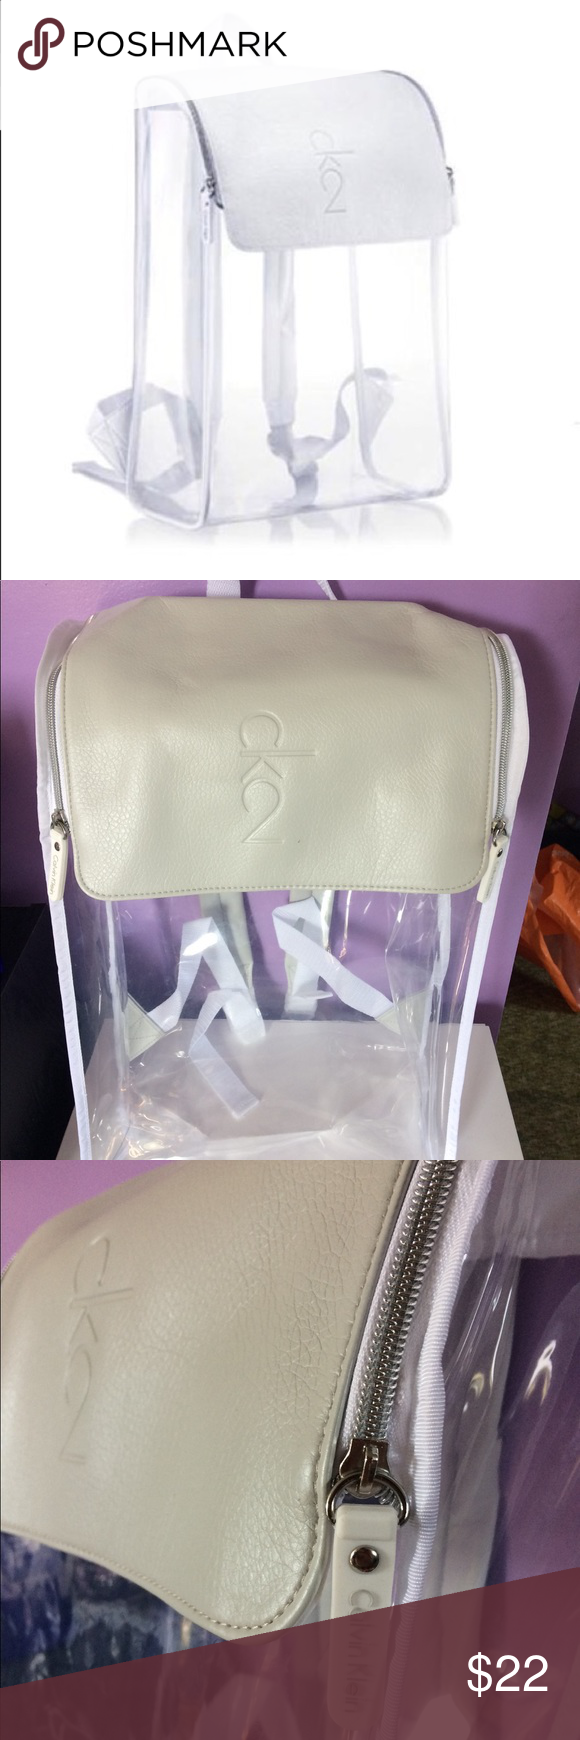 8aa07c082bb30f NWT Ck2 Clear Backpack Calvin Klein Beauty Clear & Faux Leather Backpack.  Brand new with tags! Calvin Klein Bags